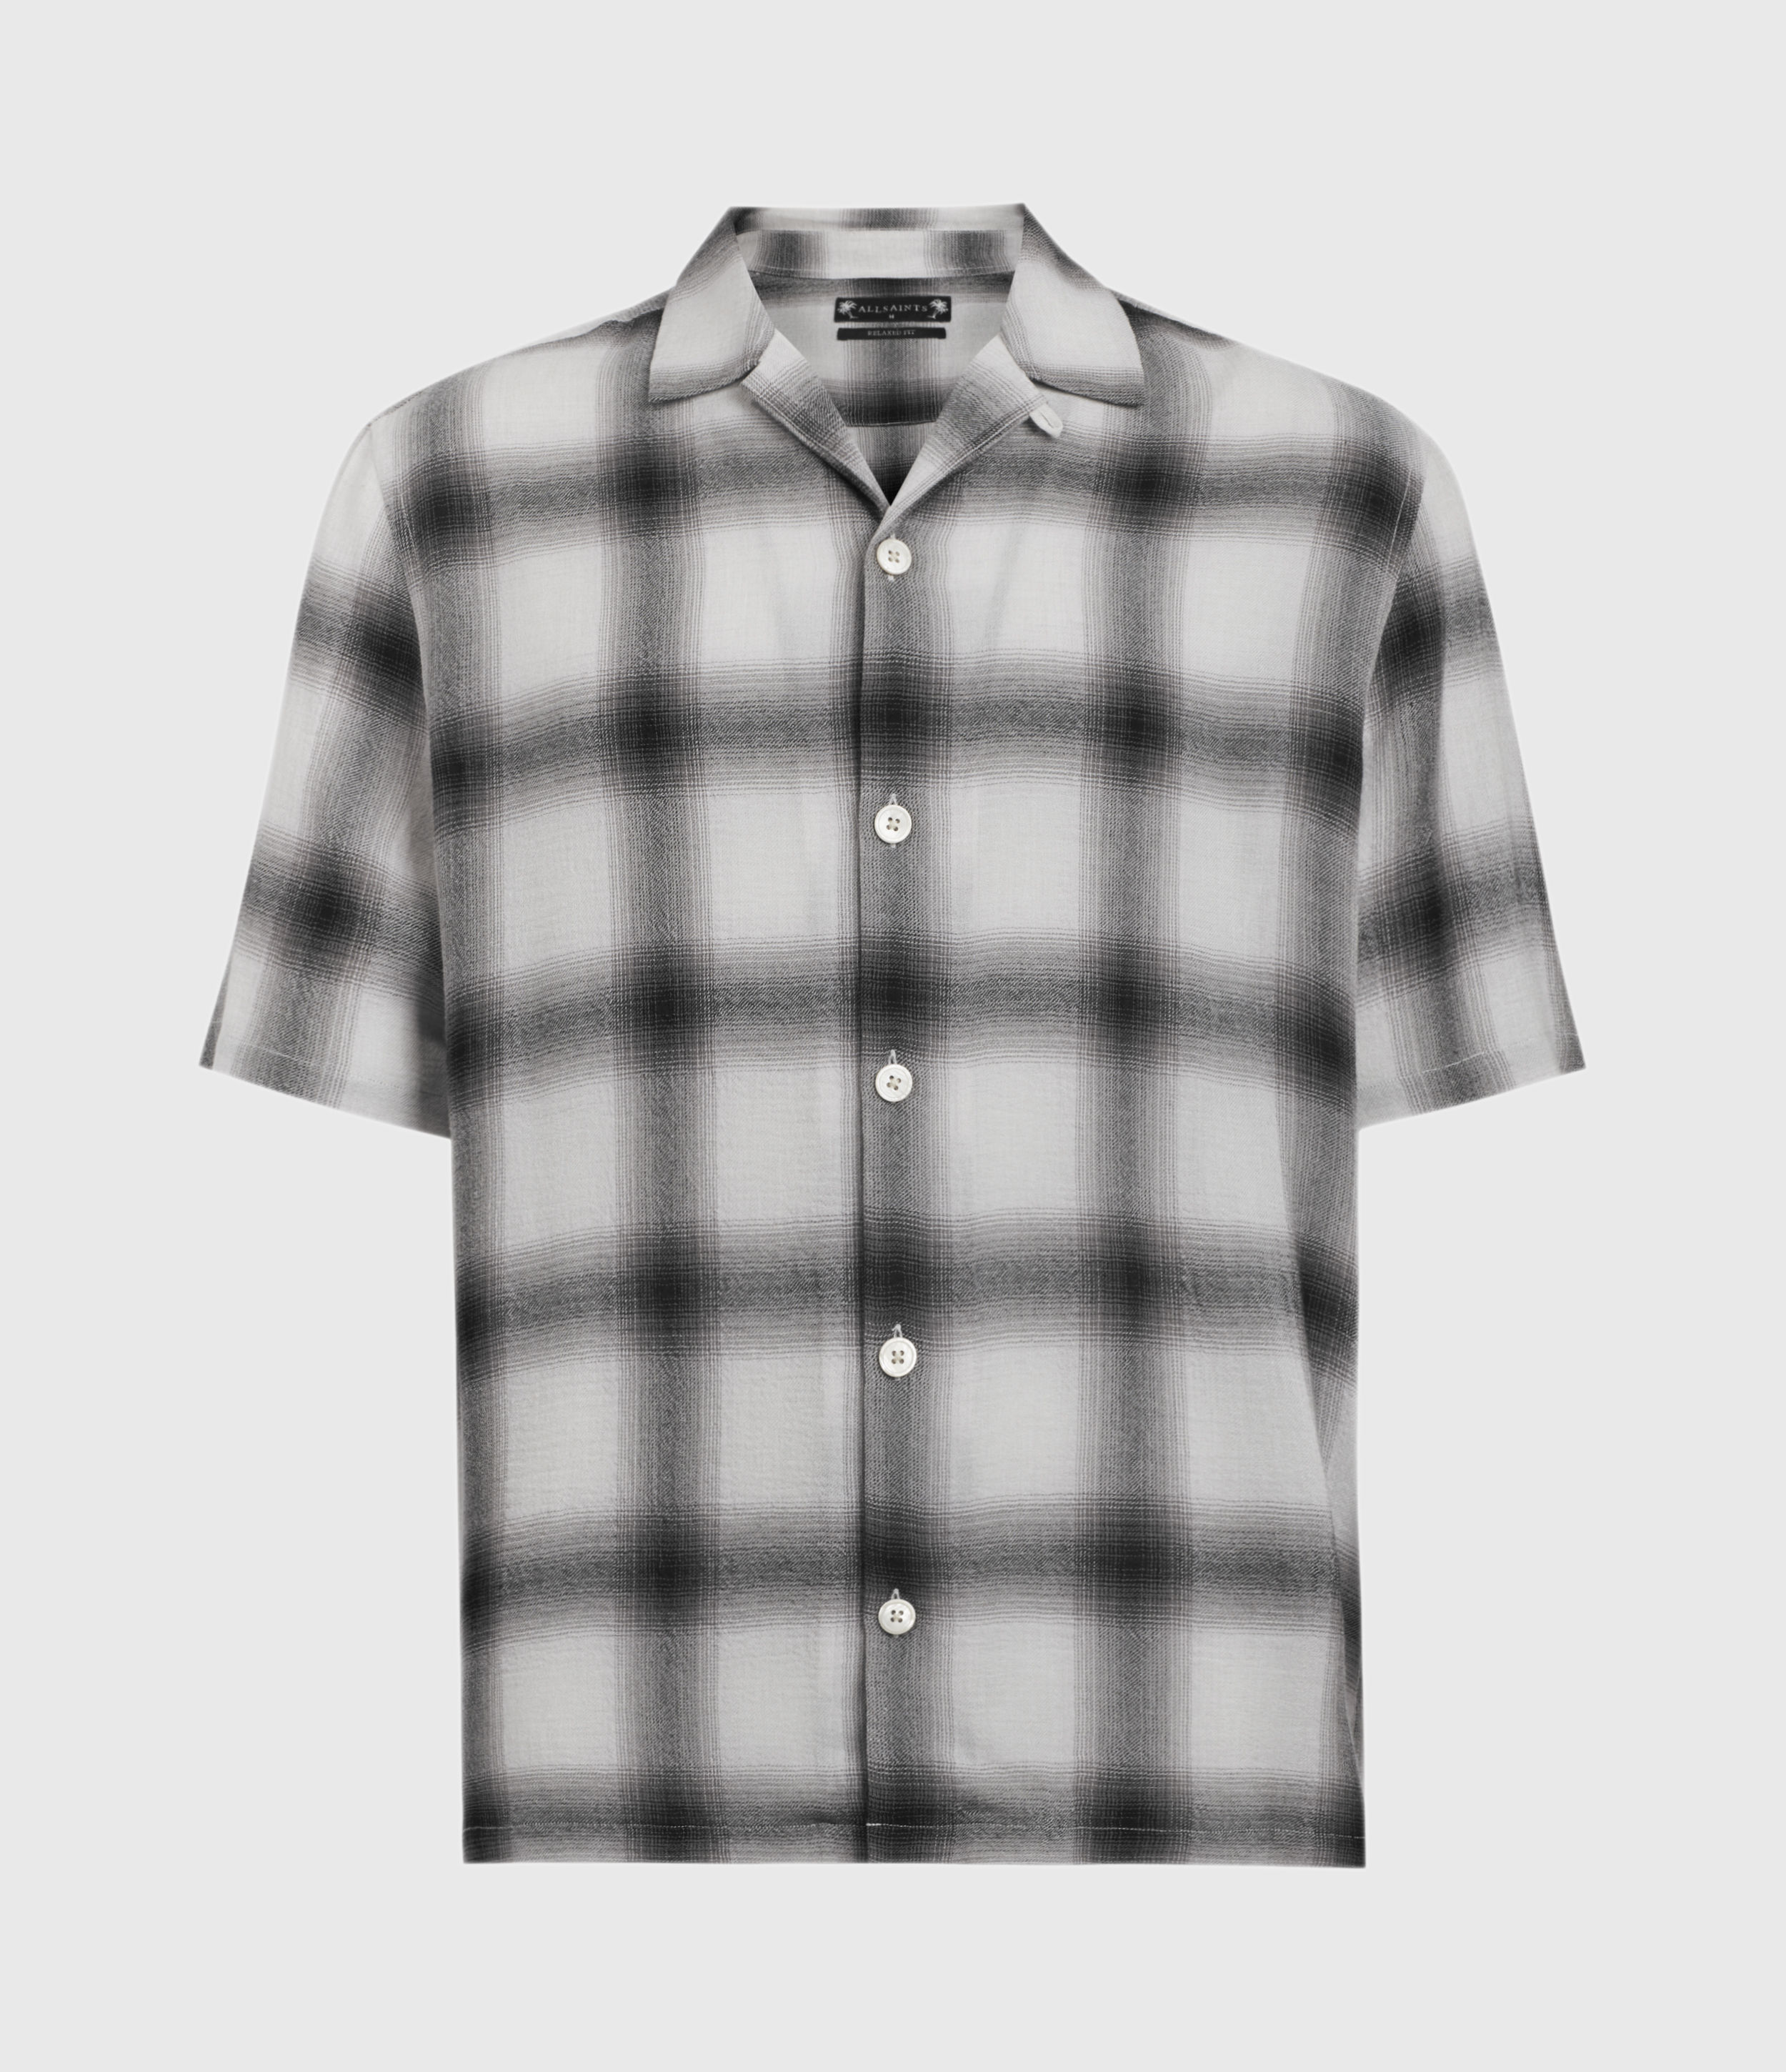 AllSaints Quincy Shirt